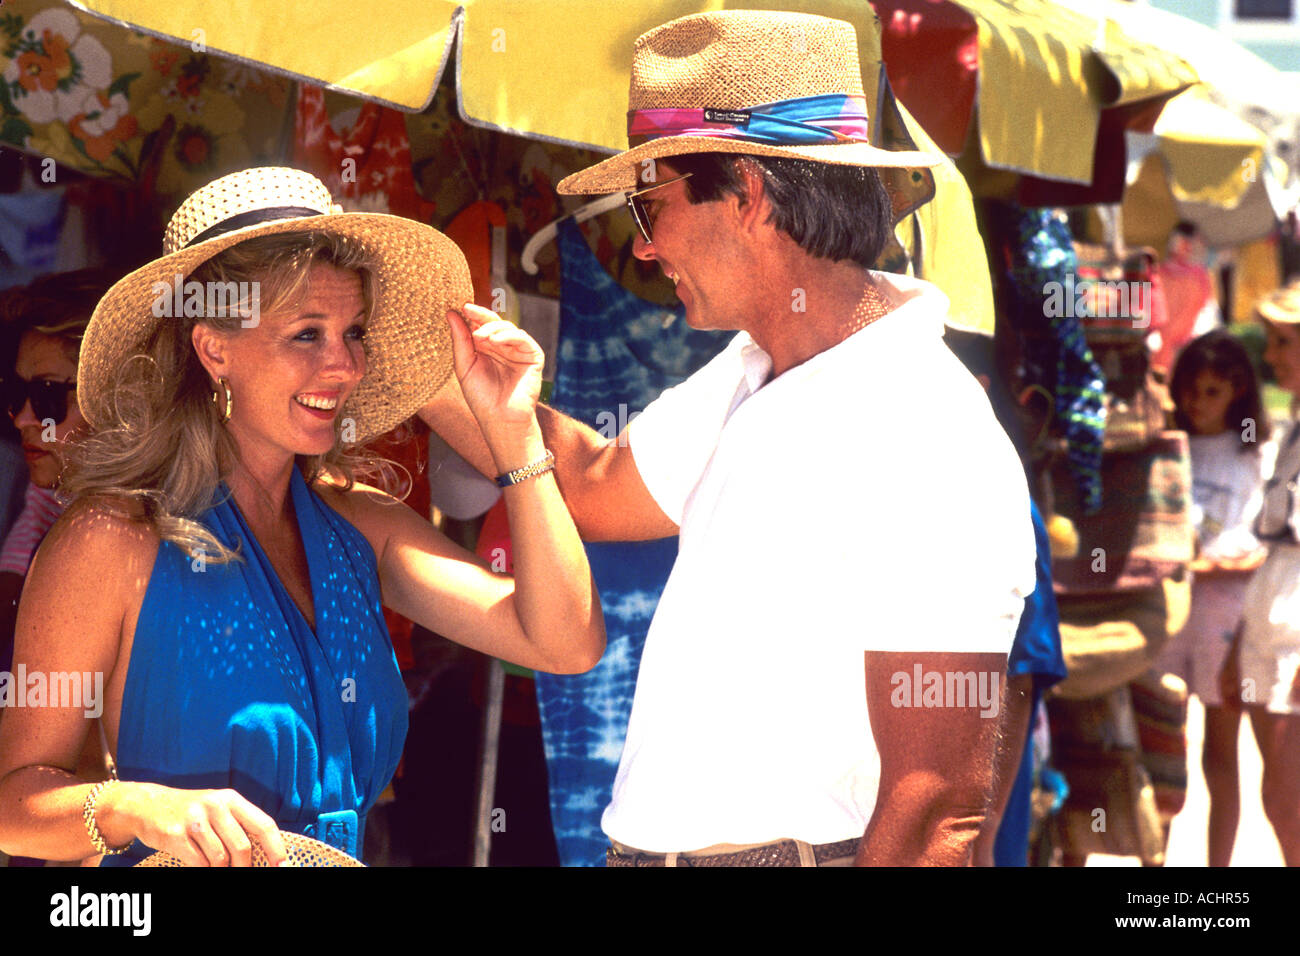 fb3dfd71b89 Colorful tourist couple shopping at island straw market Stock Photo ...